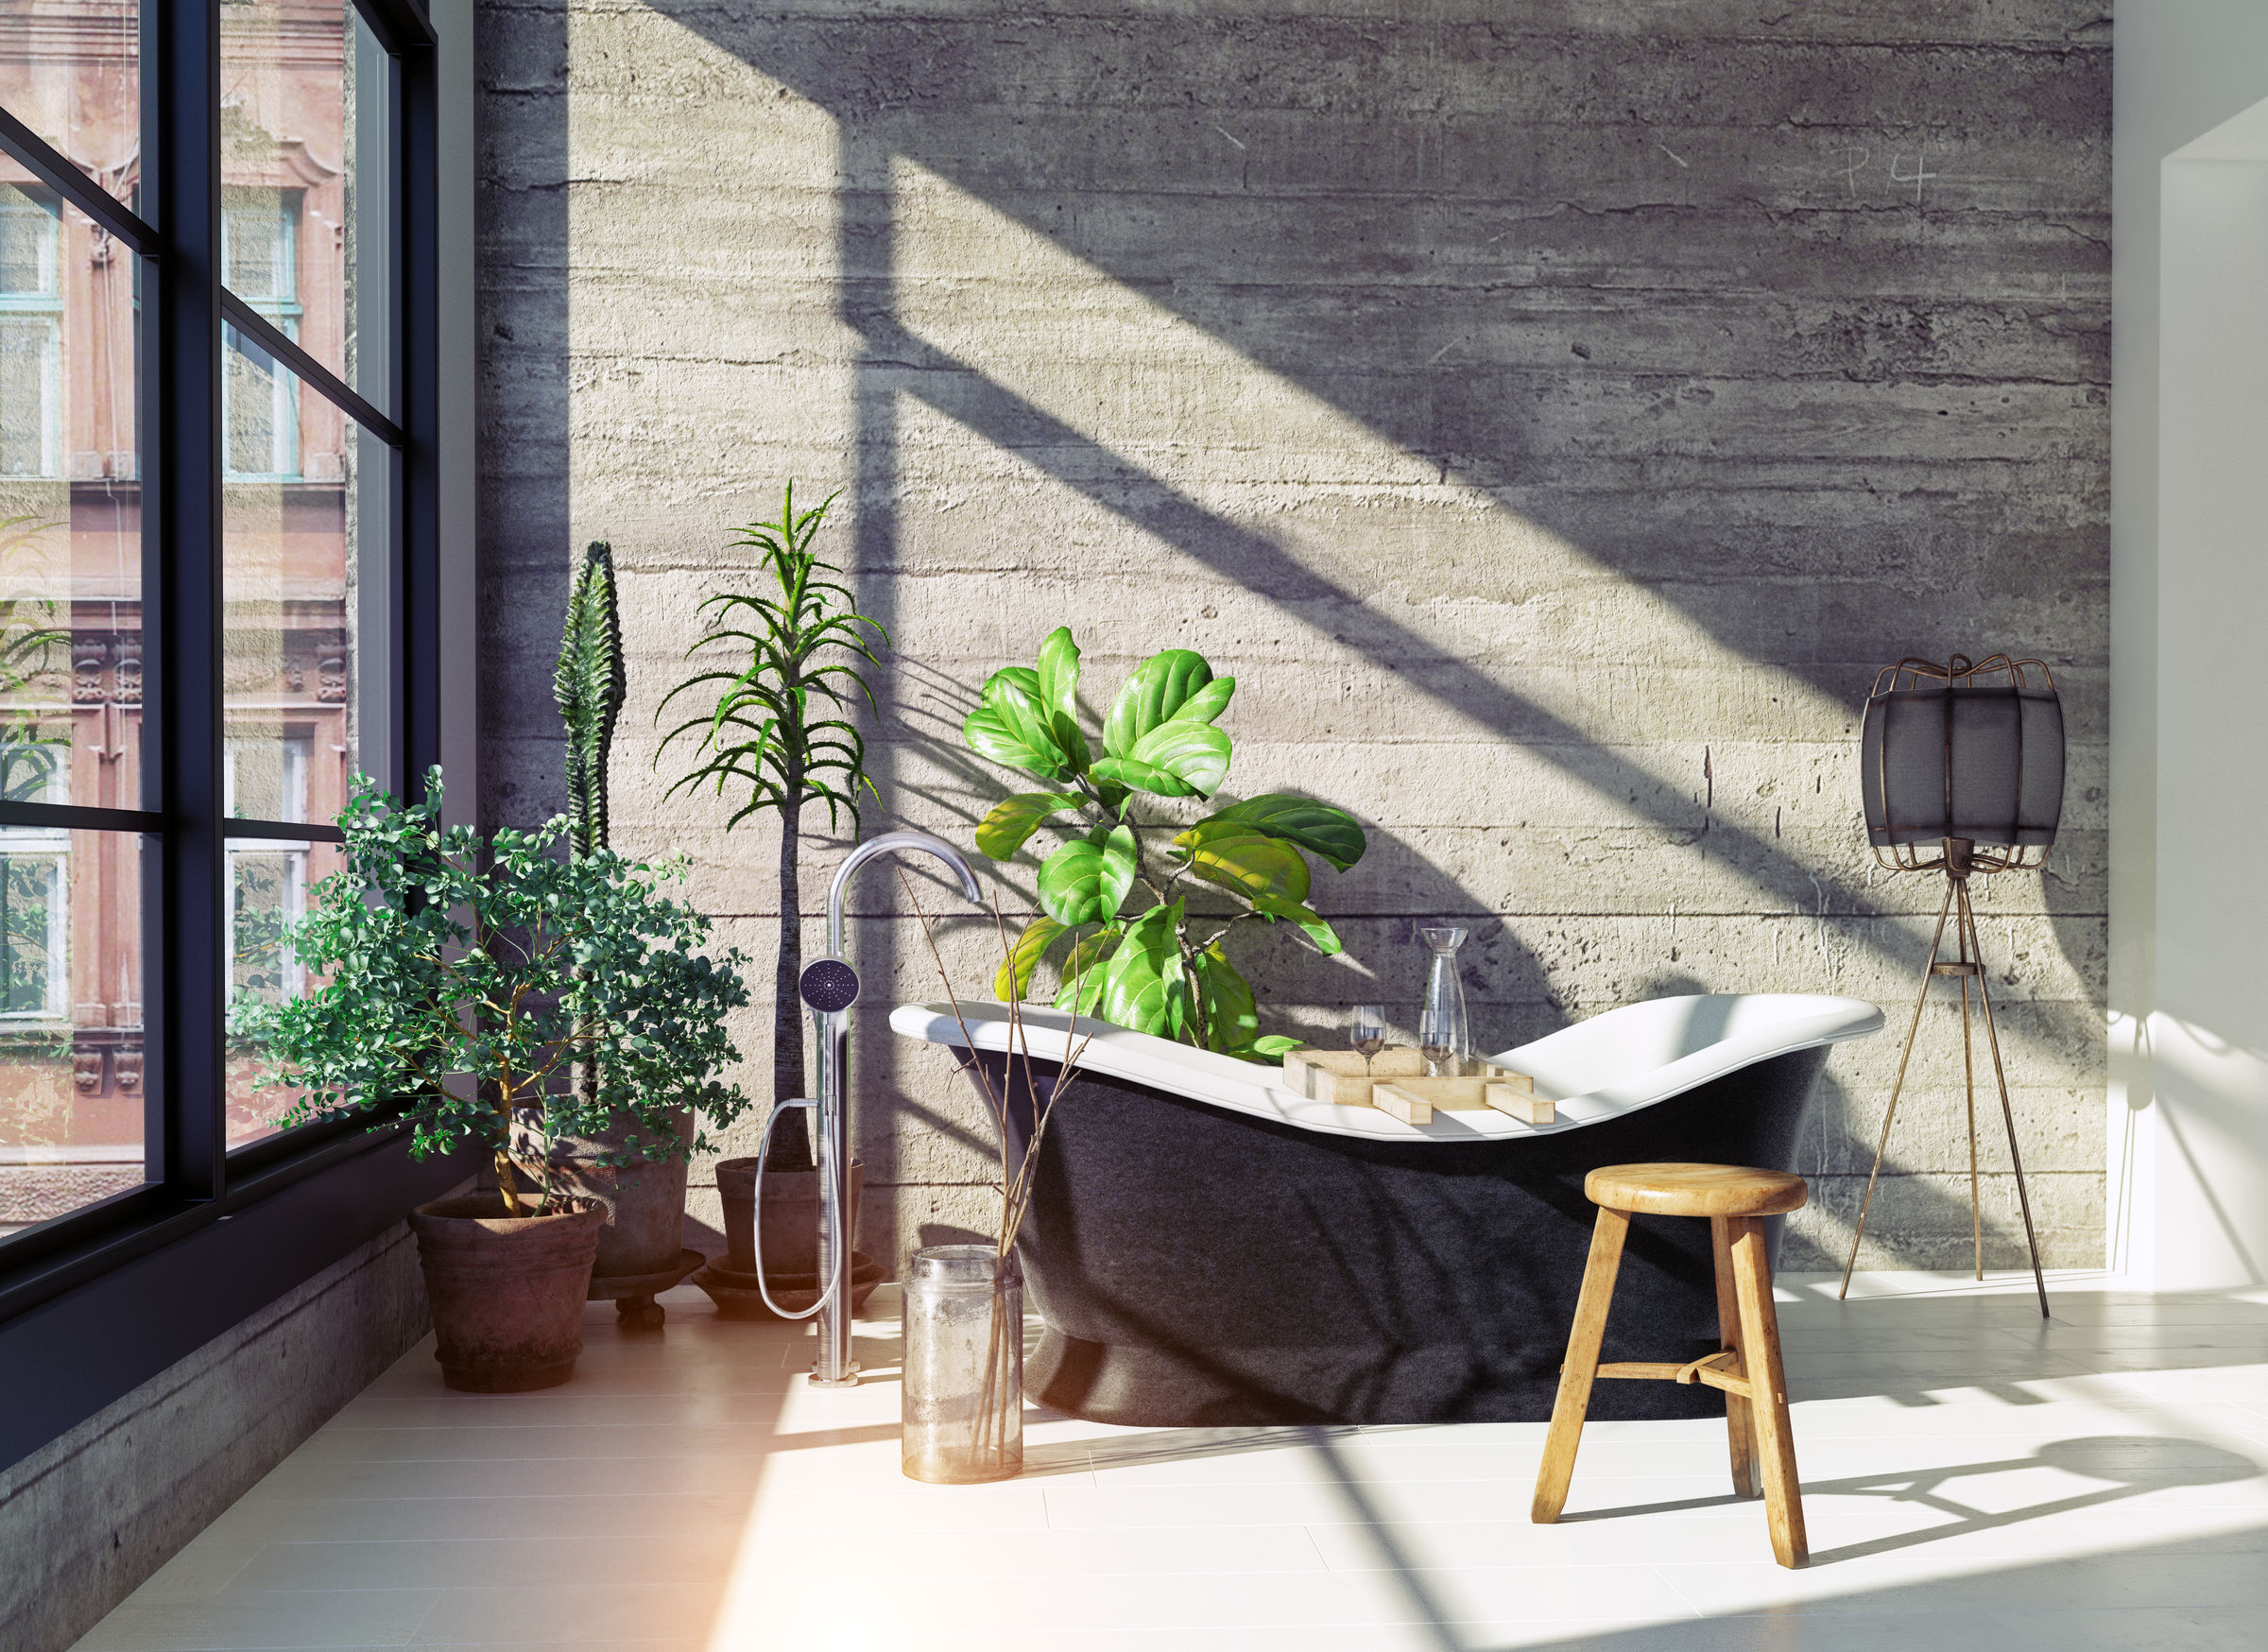 modern bathroom interior with indoor plants and bathtub